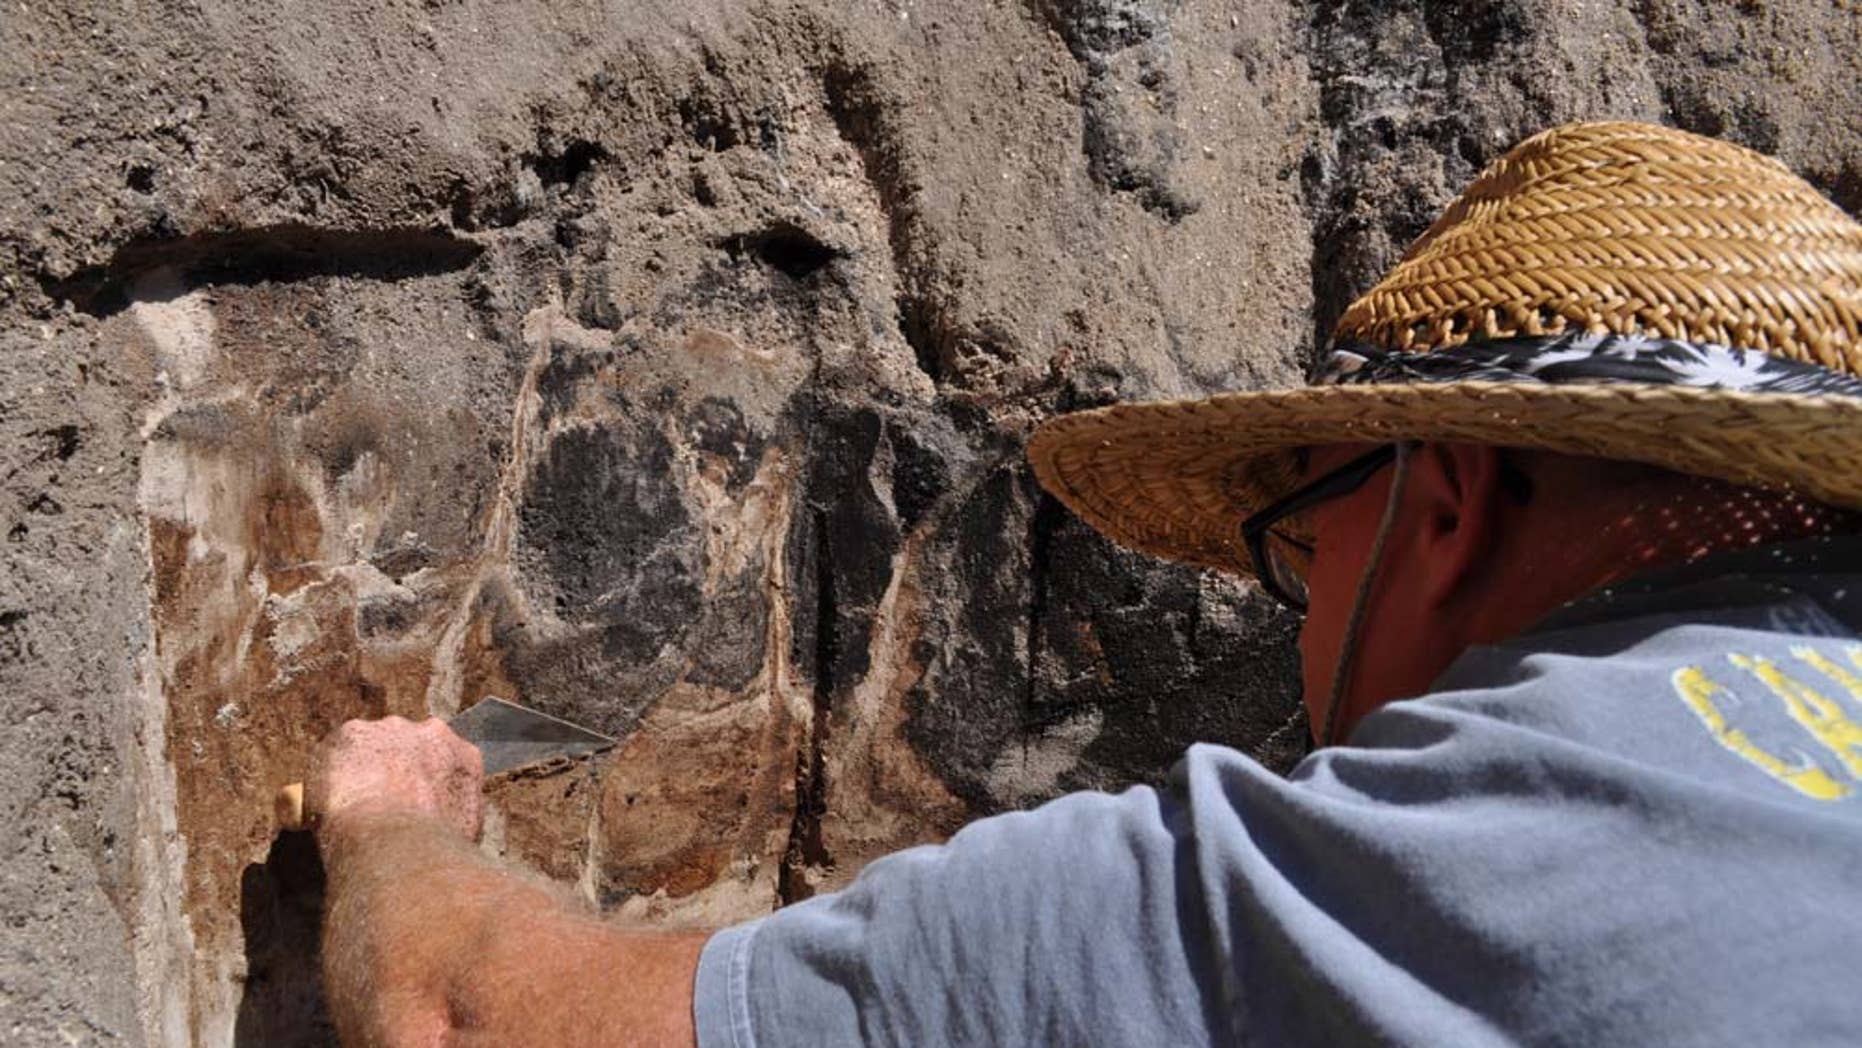 Scientists uncovered the bones of an ancient, extinct species of bison in Vero Beach, Fla.